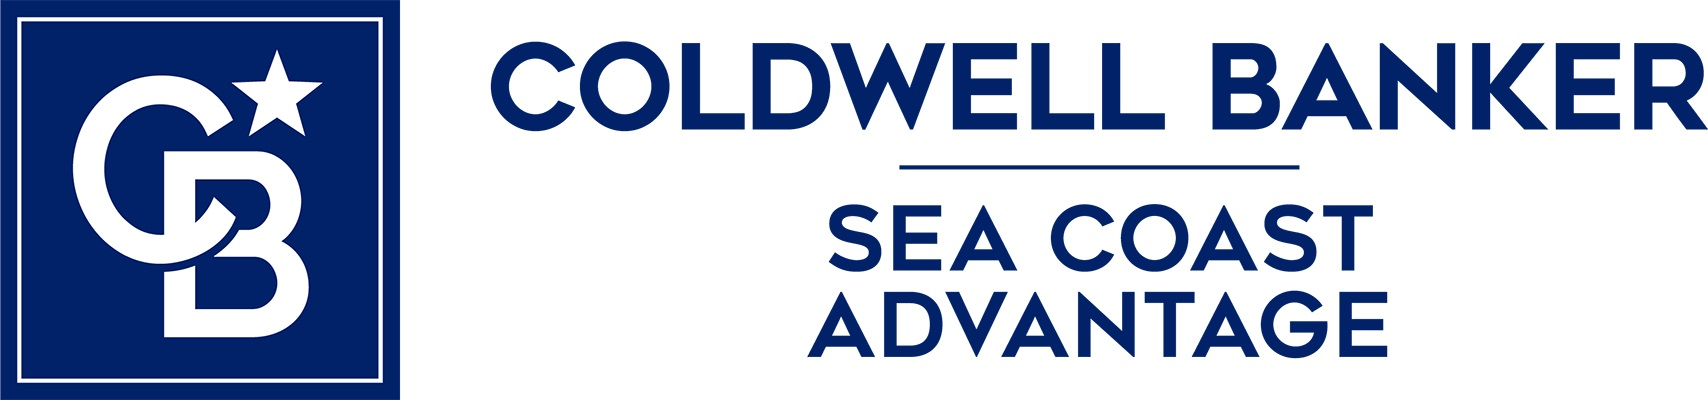 Chris Snyder - Coldwell Banker Sea Coast Advantage Realty